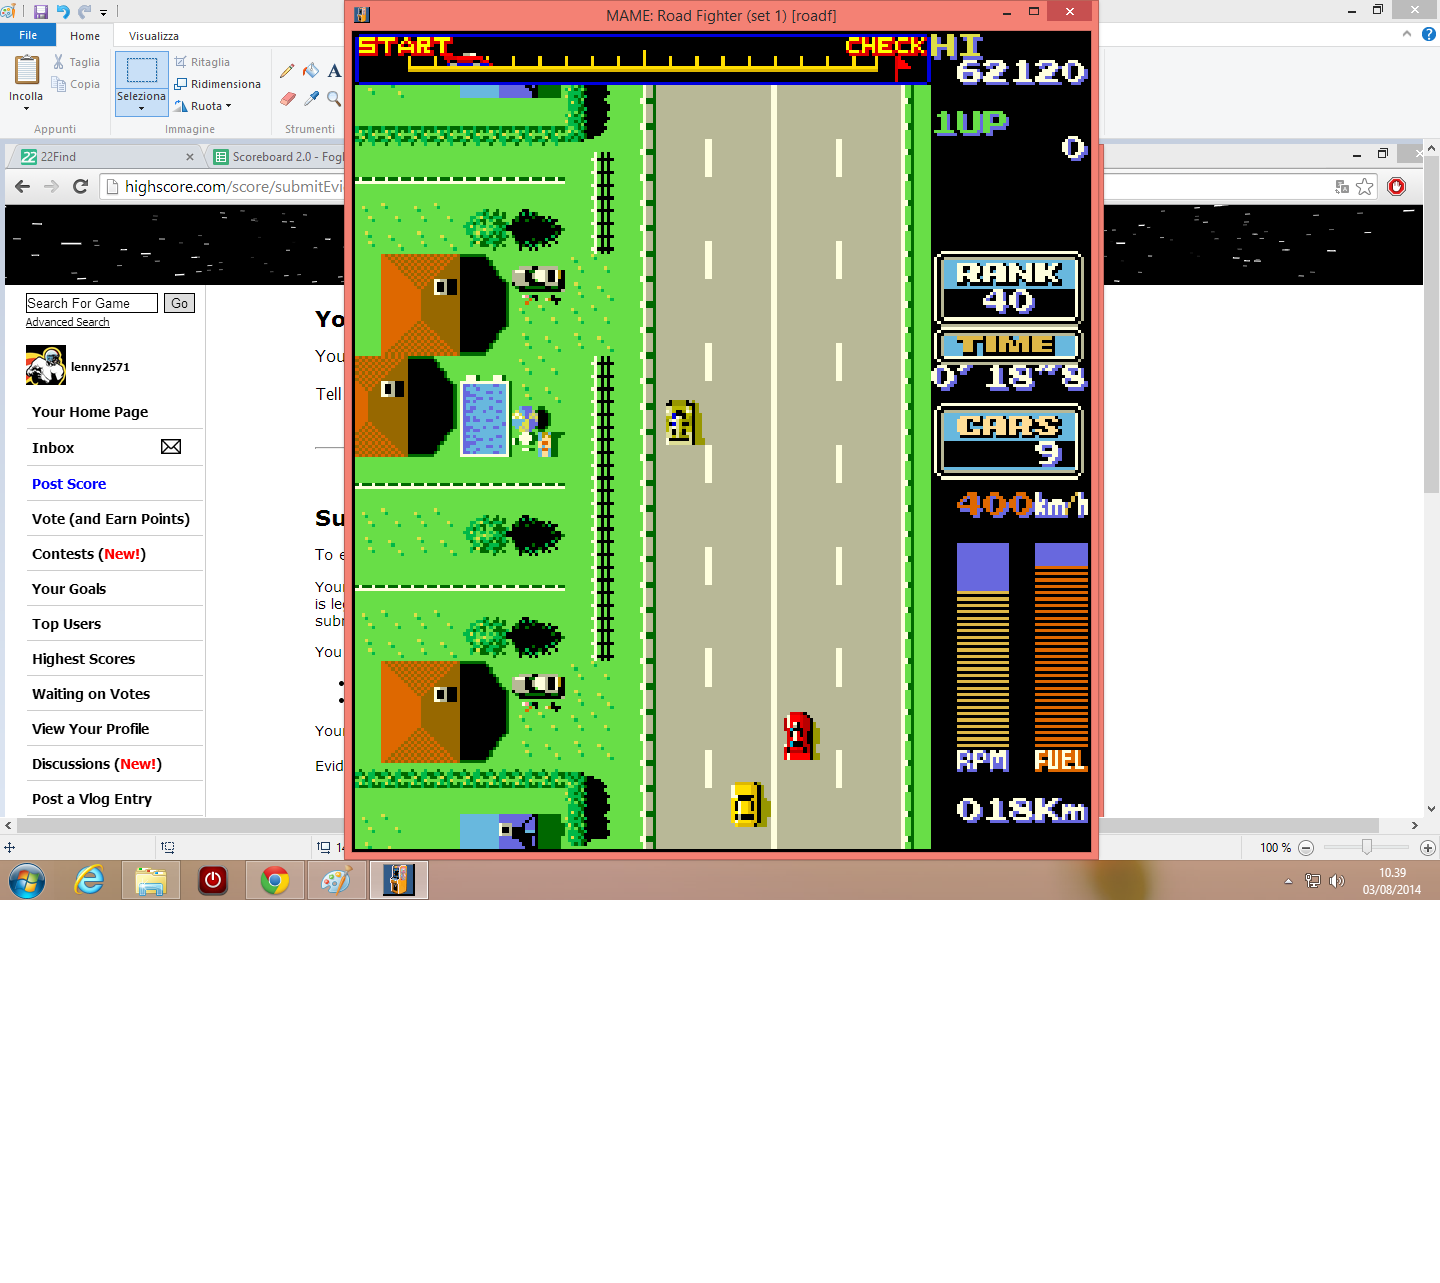 Road Fighter [roadf] 62,120 points